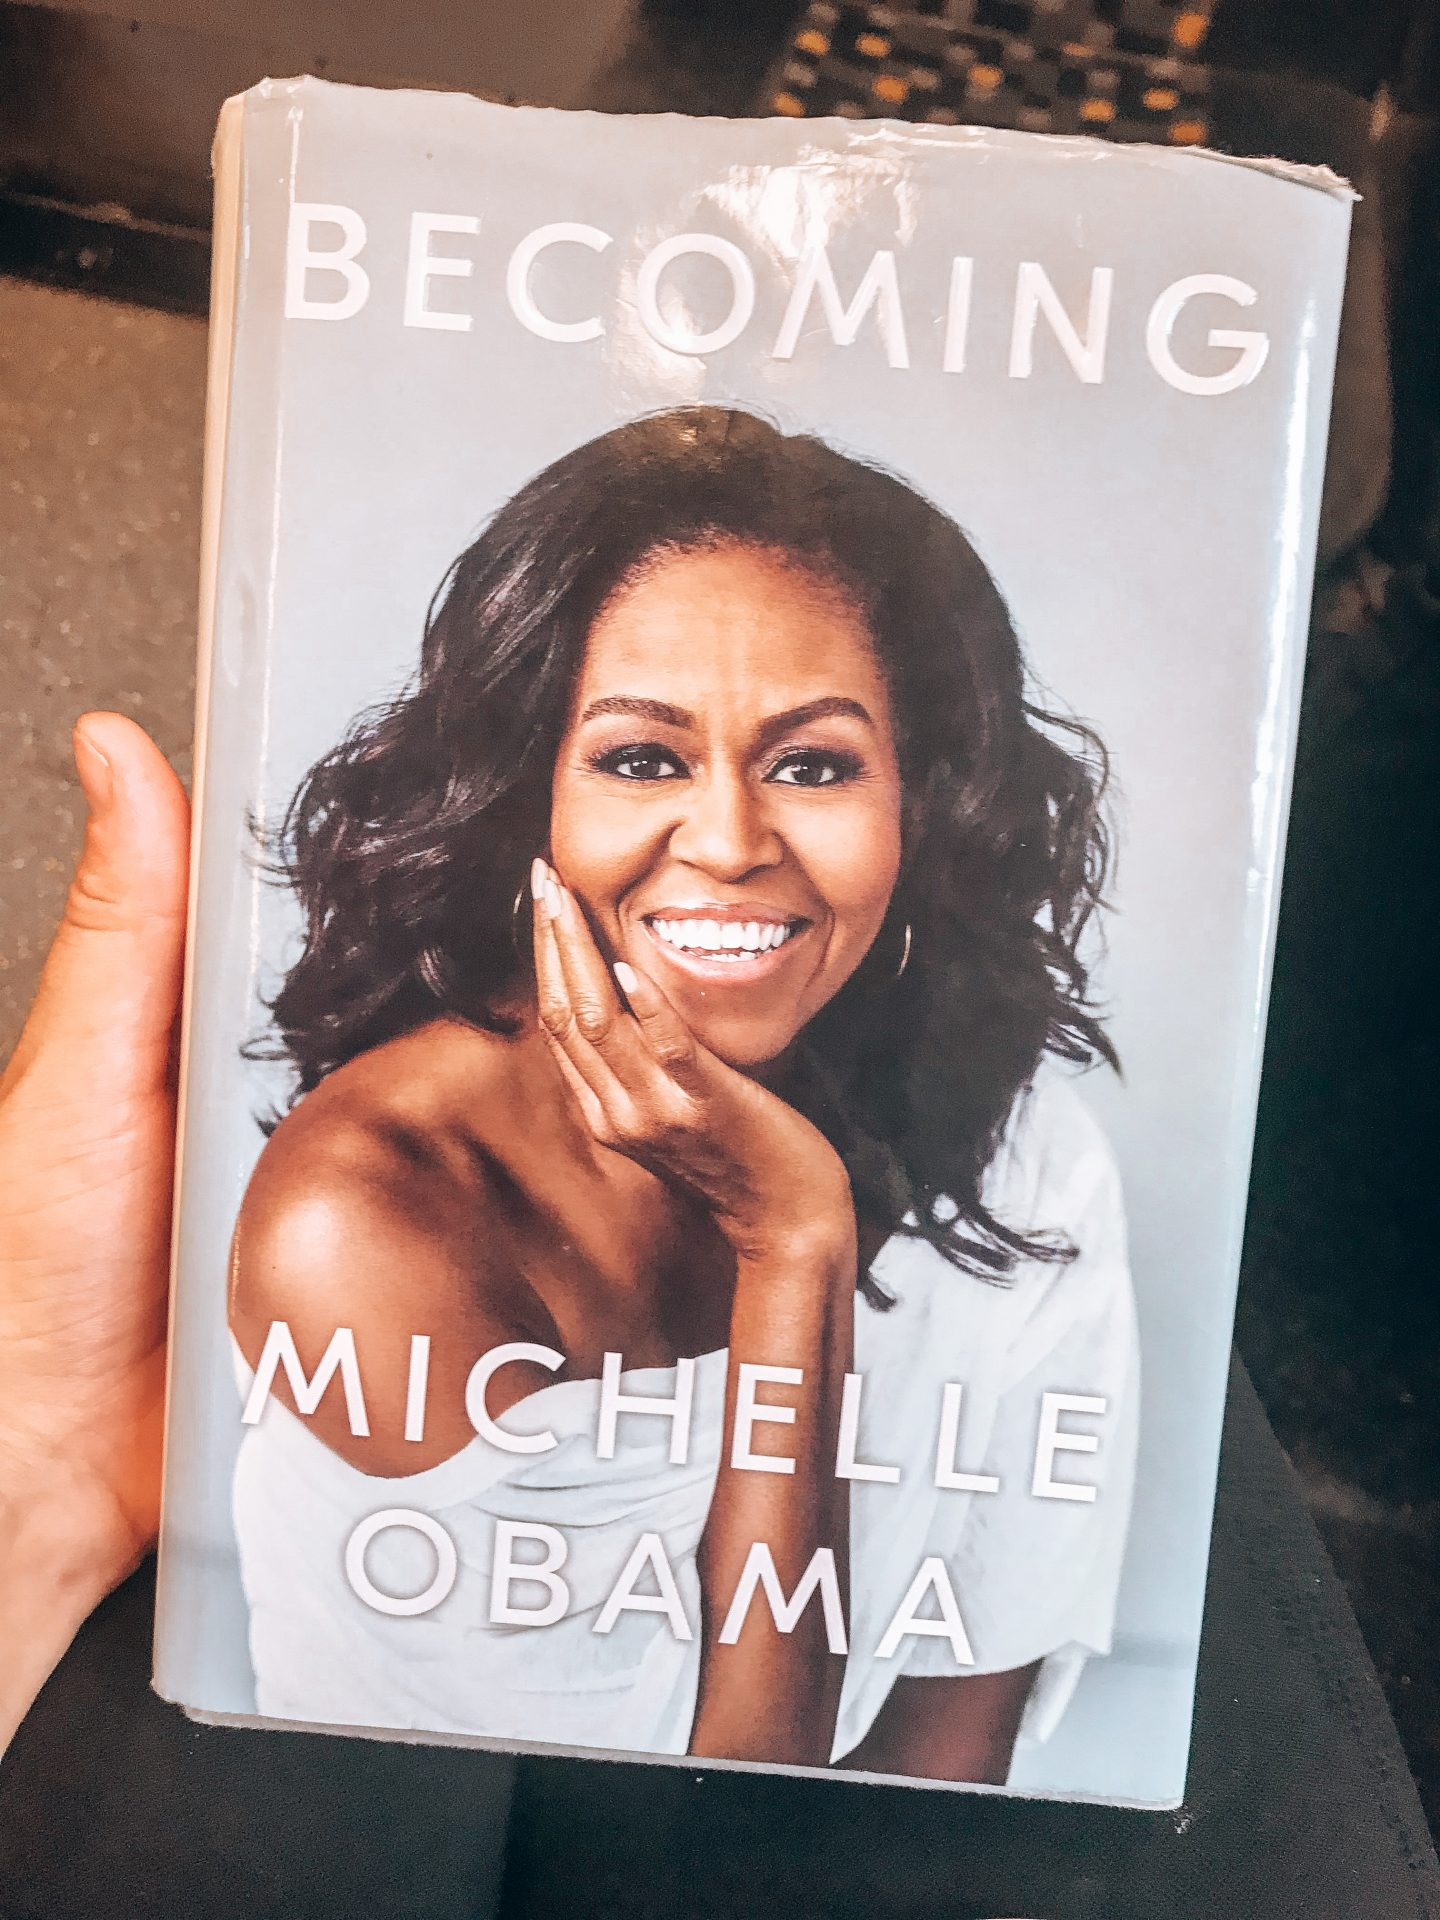 Becoming by Michelle Obama, each captivating part of this memoir / autobiography gives an insight into the morals and values she's developed and maintained.